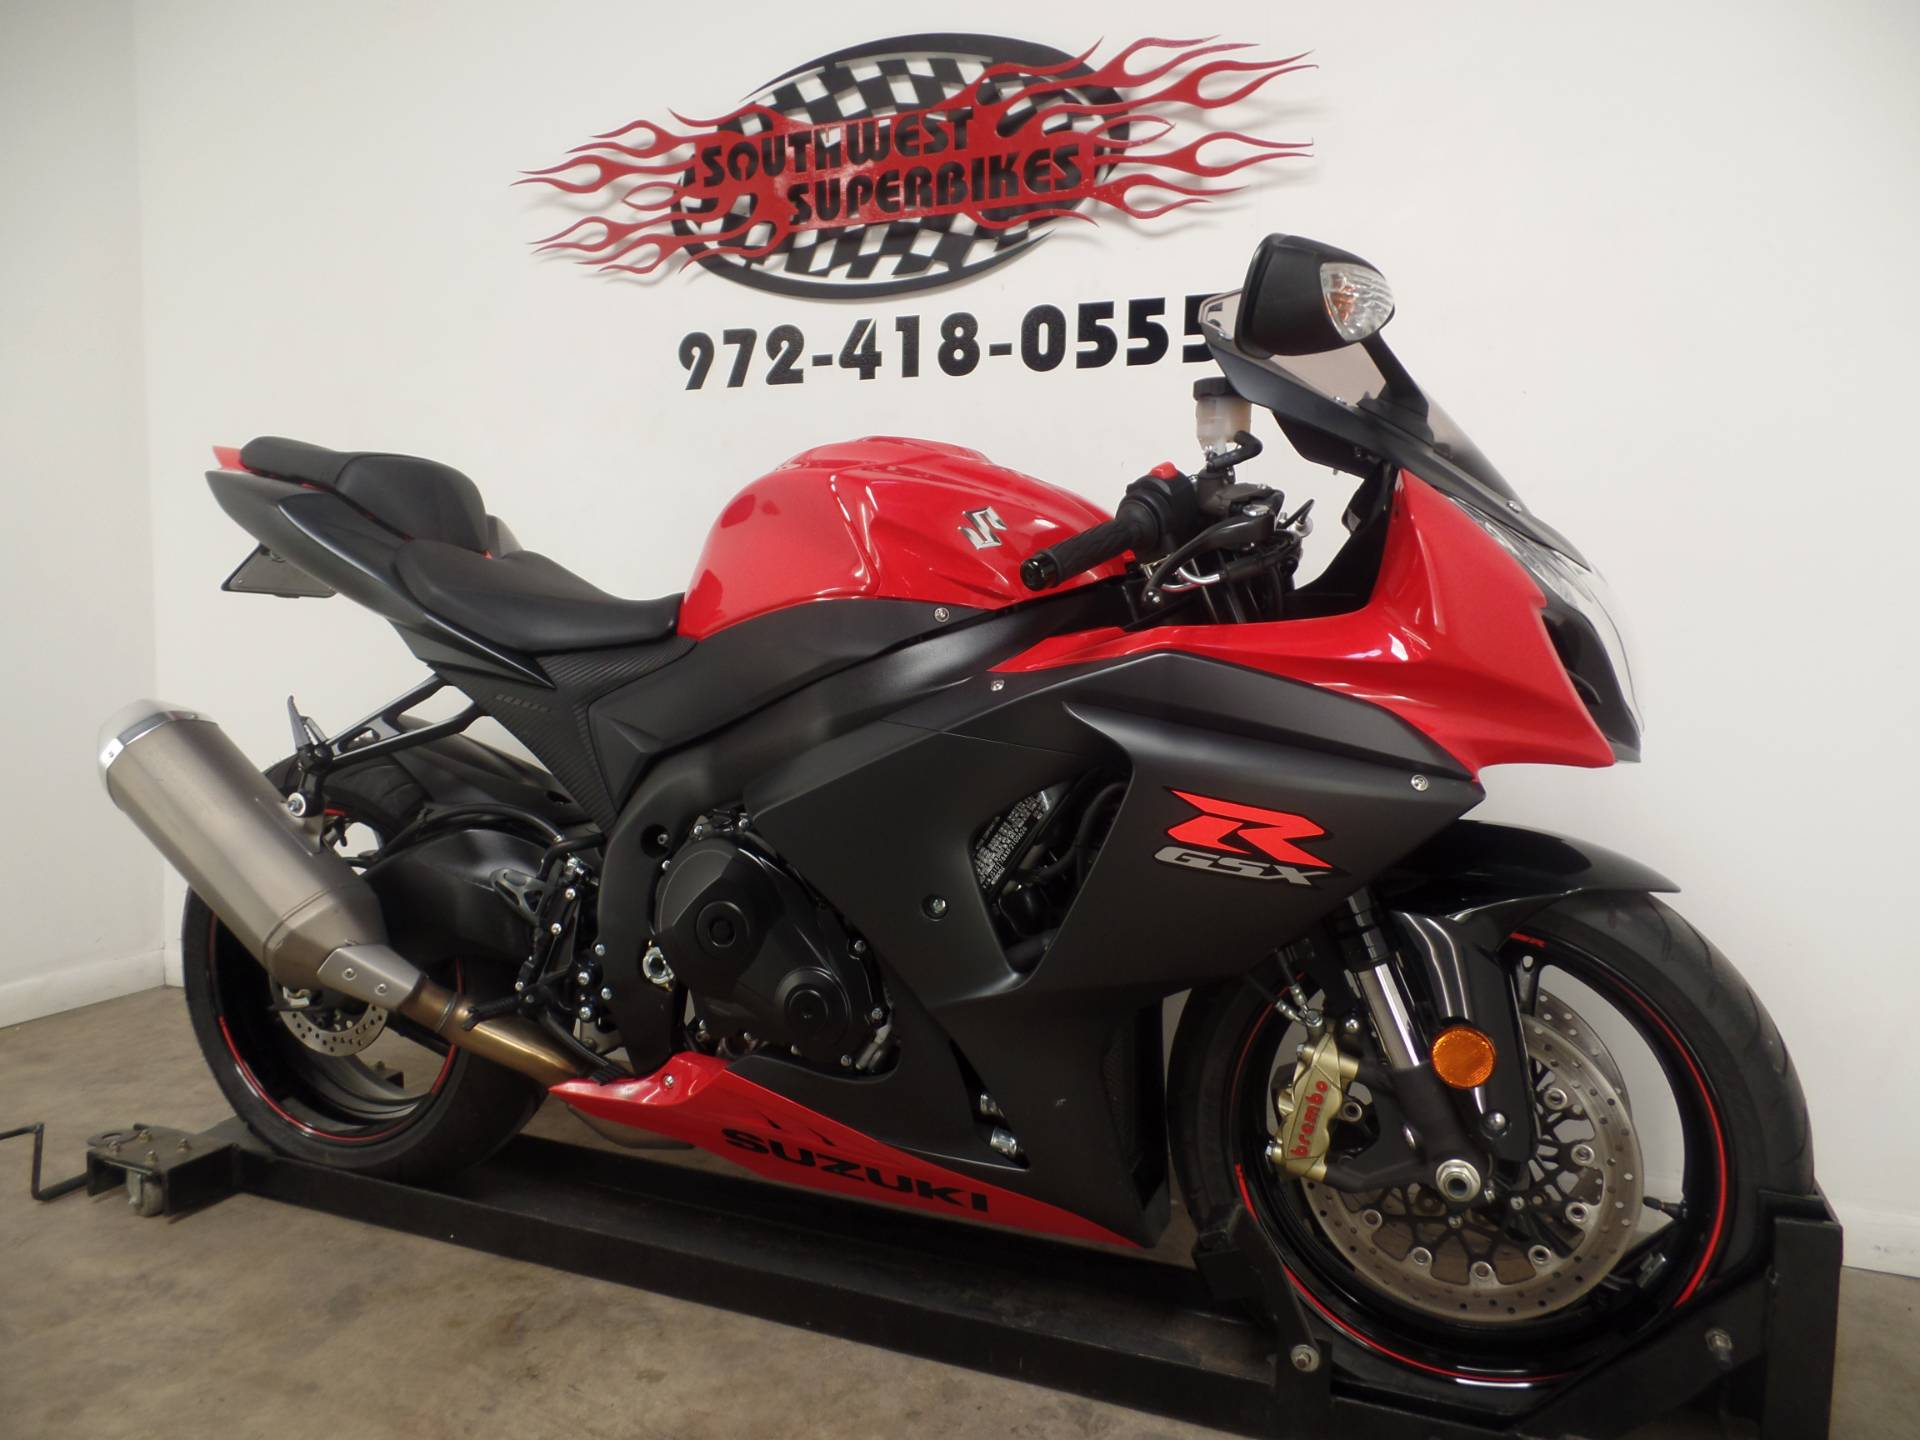 2015 Suzuki GSX-R1000 in Dallas, Texas